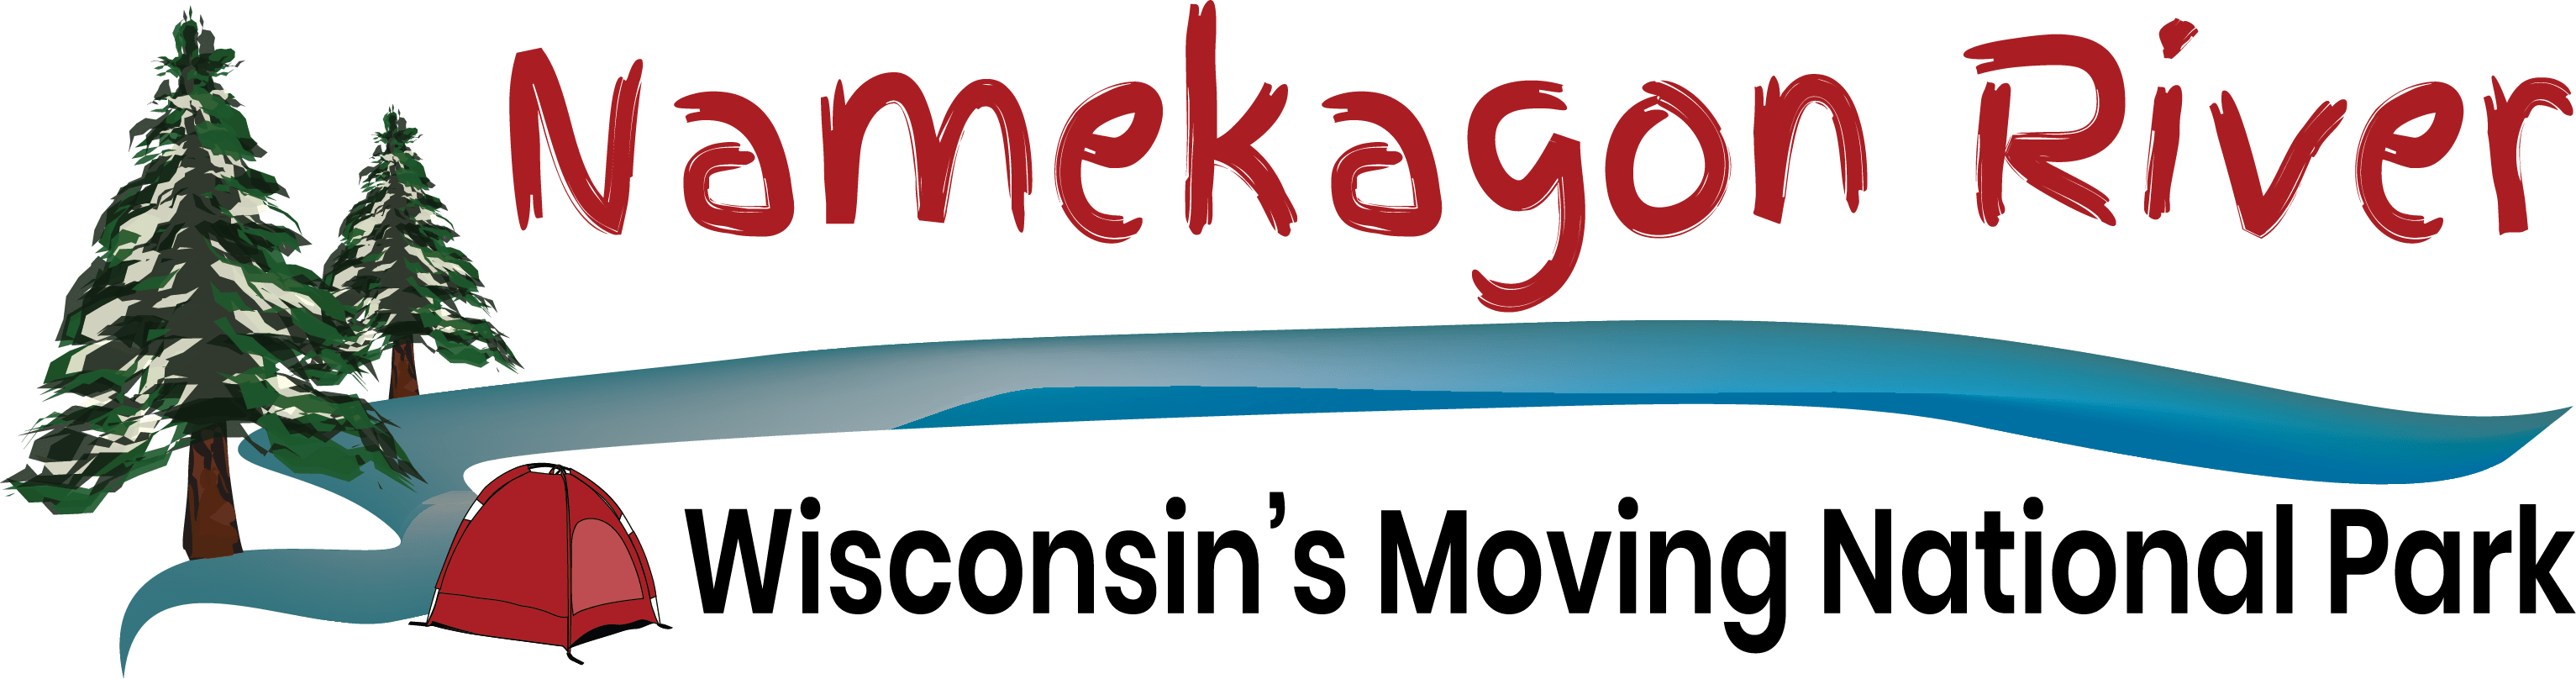 Namekagon-River-logo